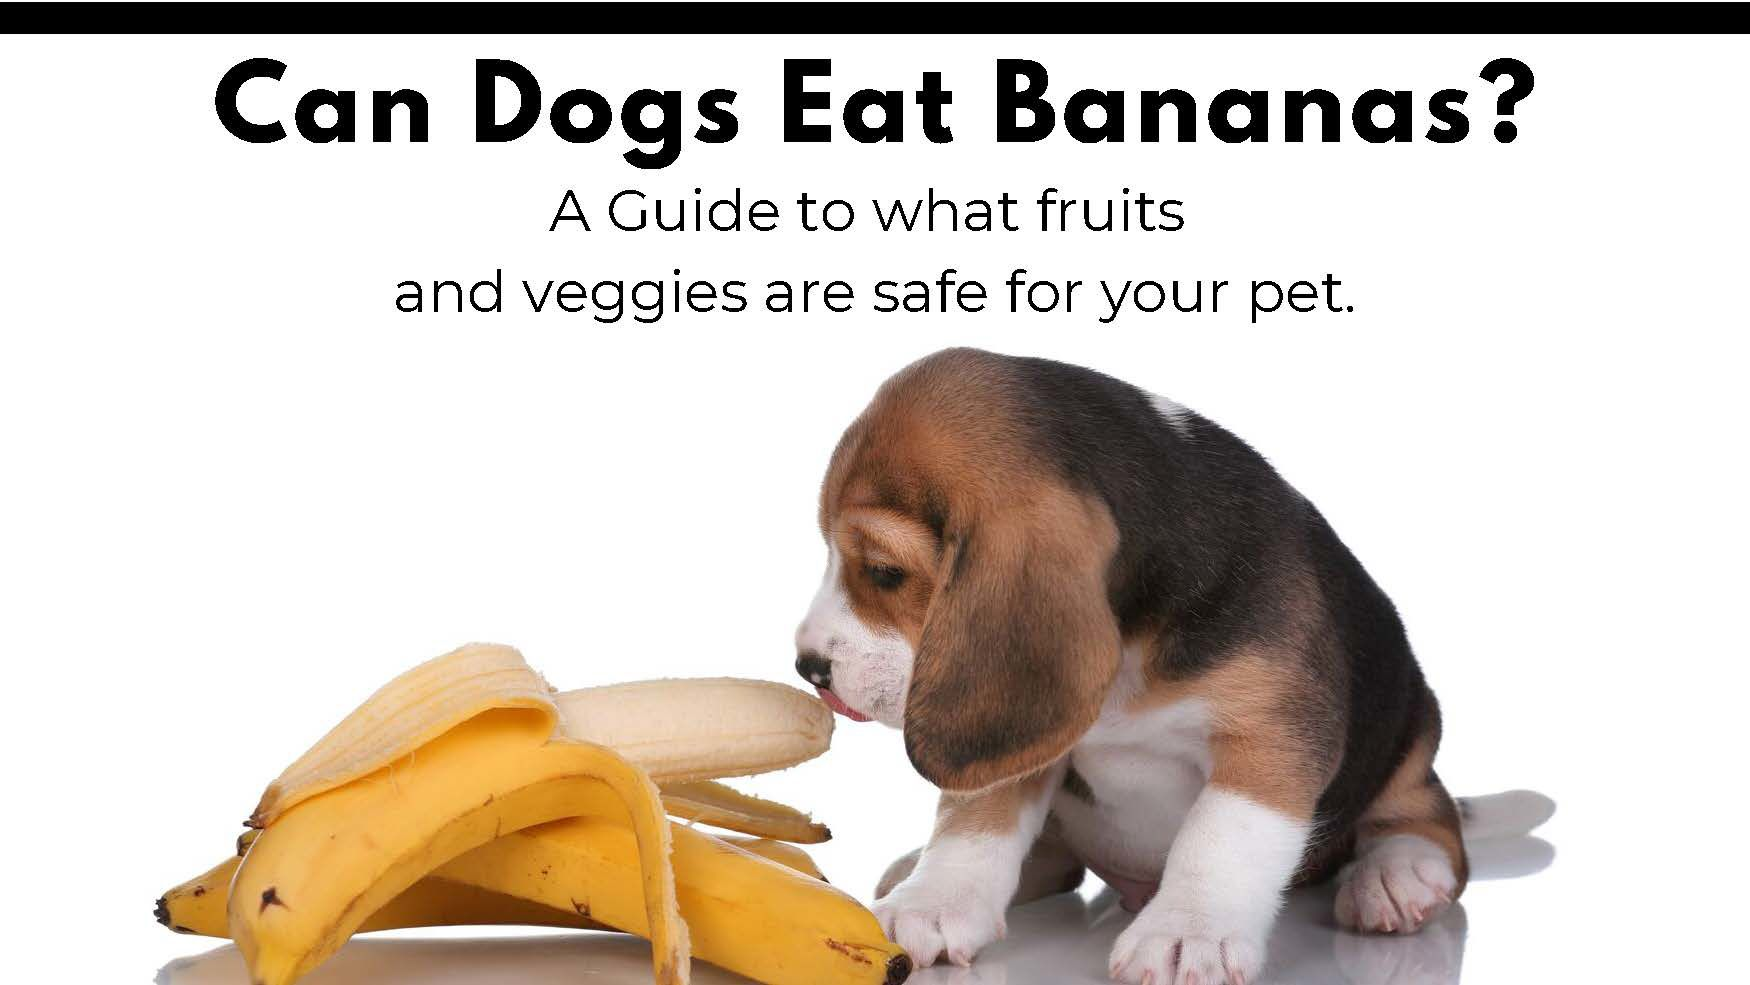 Can dogs eat bananas? A guide to what